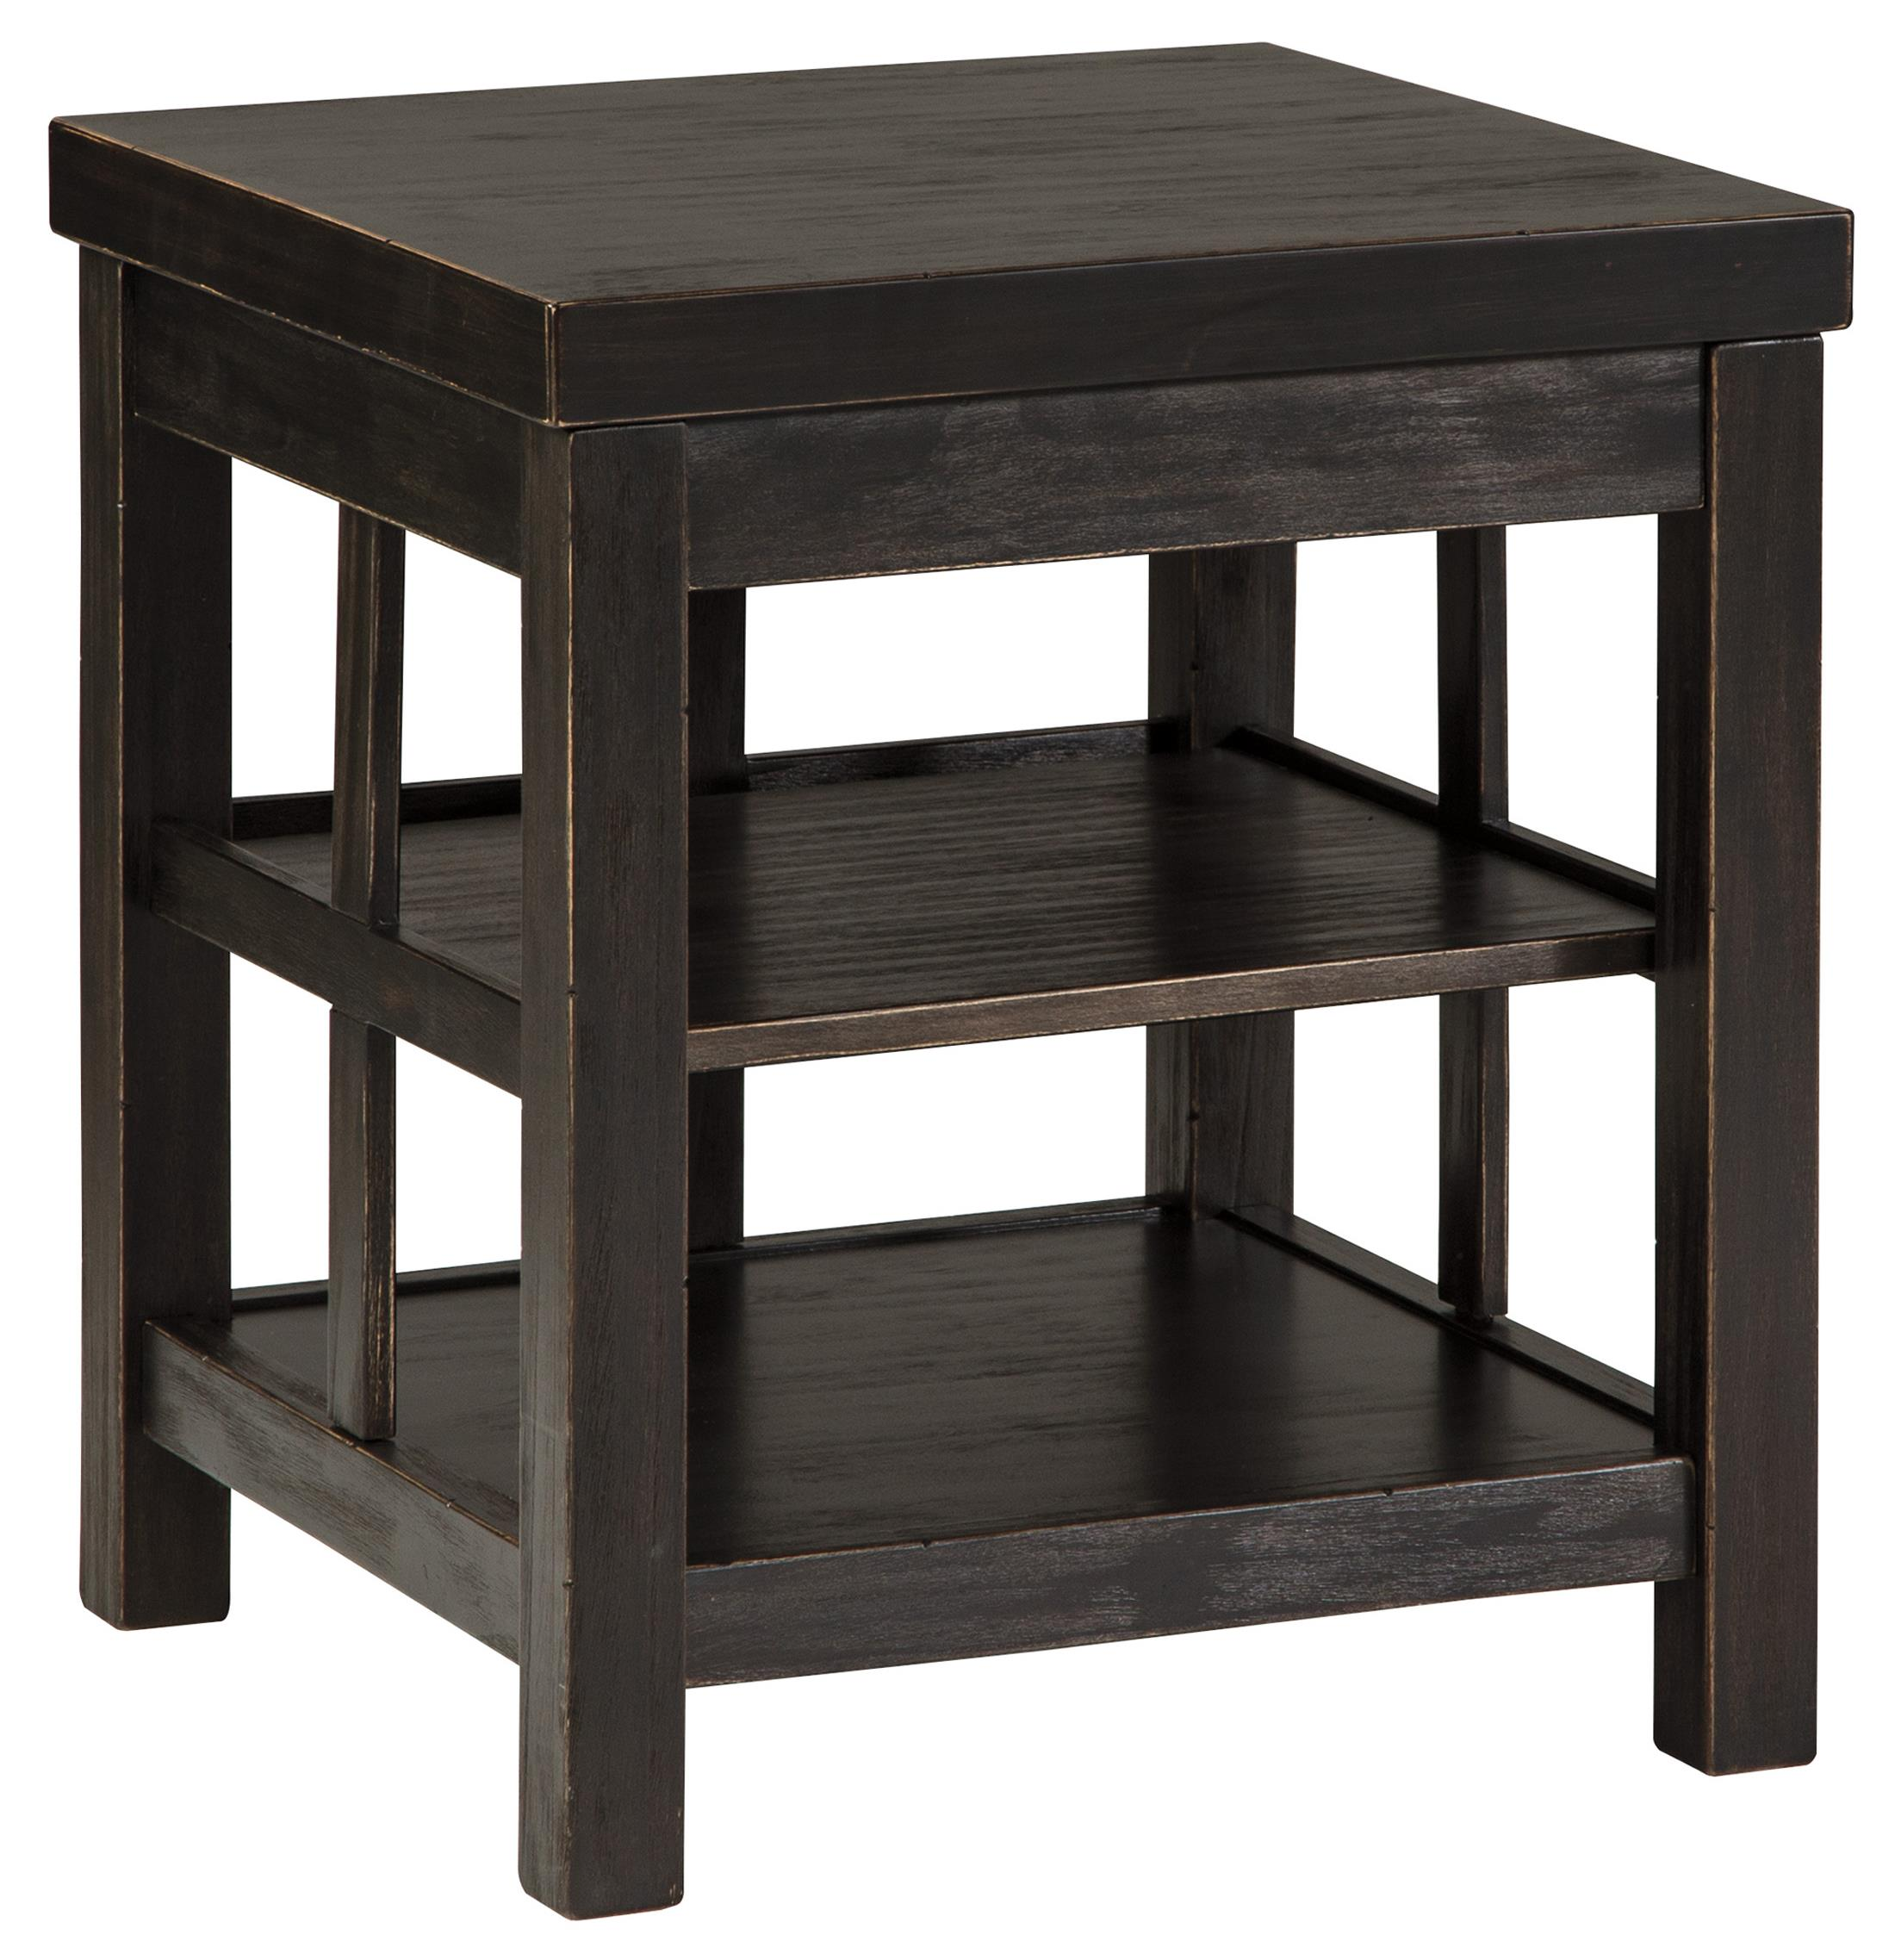 rustic distressed black square end table with shelves signature products design ashley color gavelston accent shelf white cabinet glass doors reproduction designer furniture